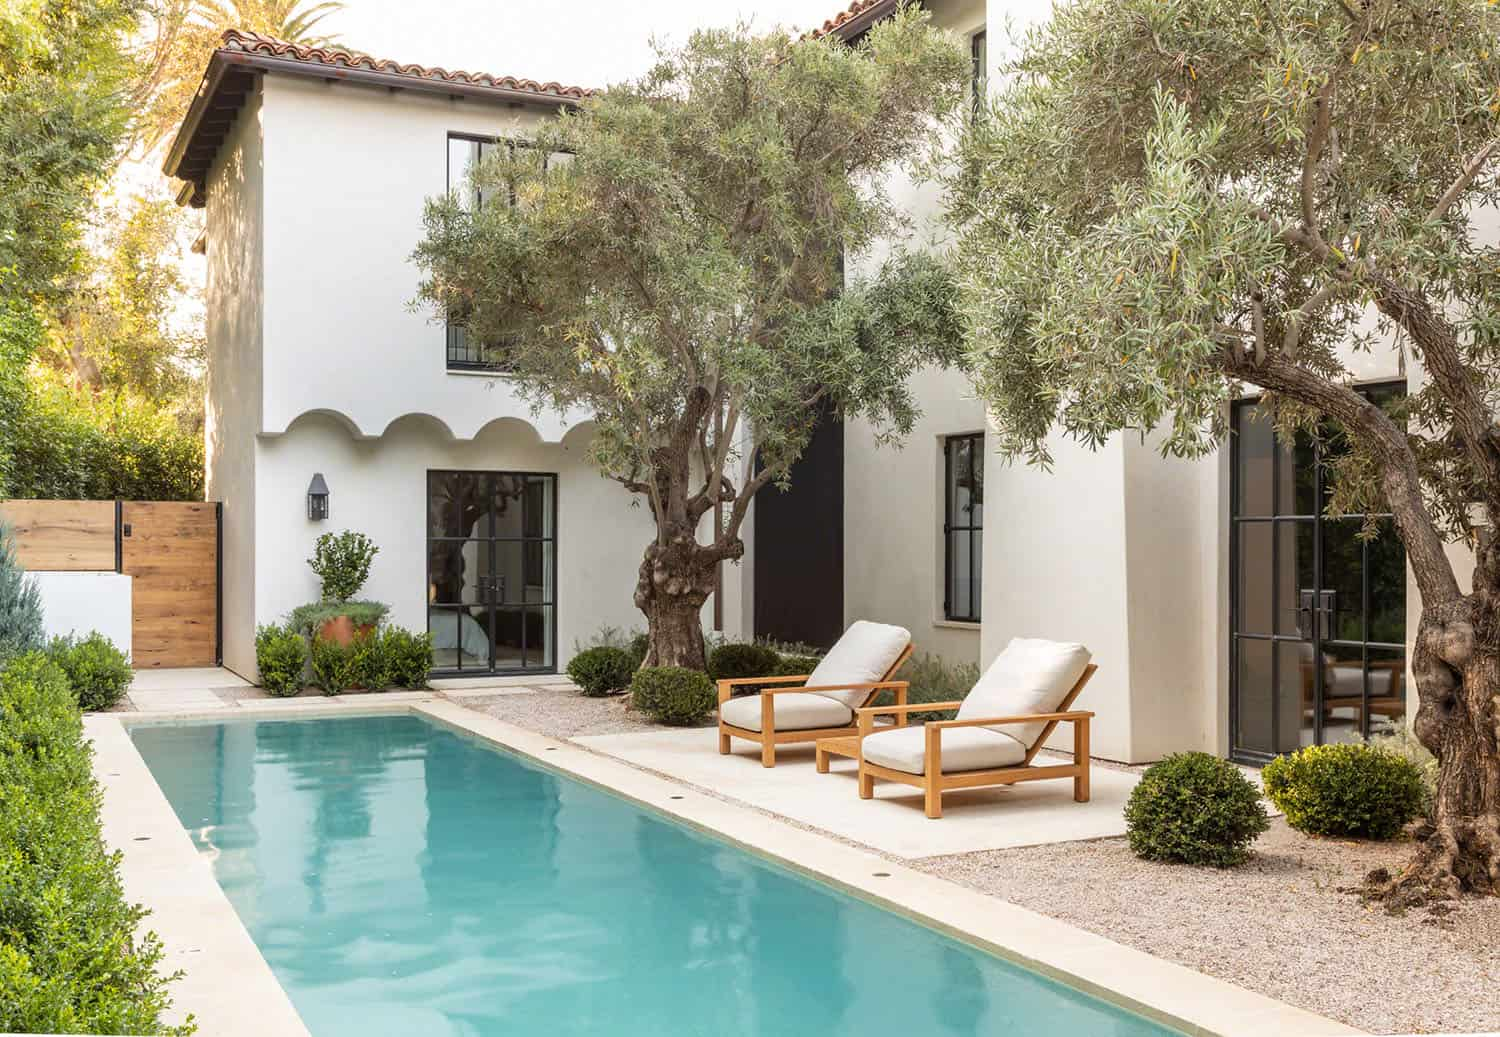 spanish-colonial-style-home-pool